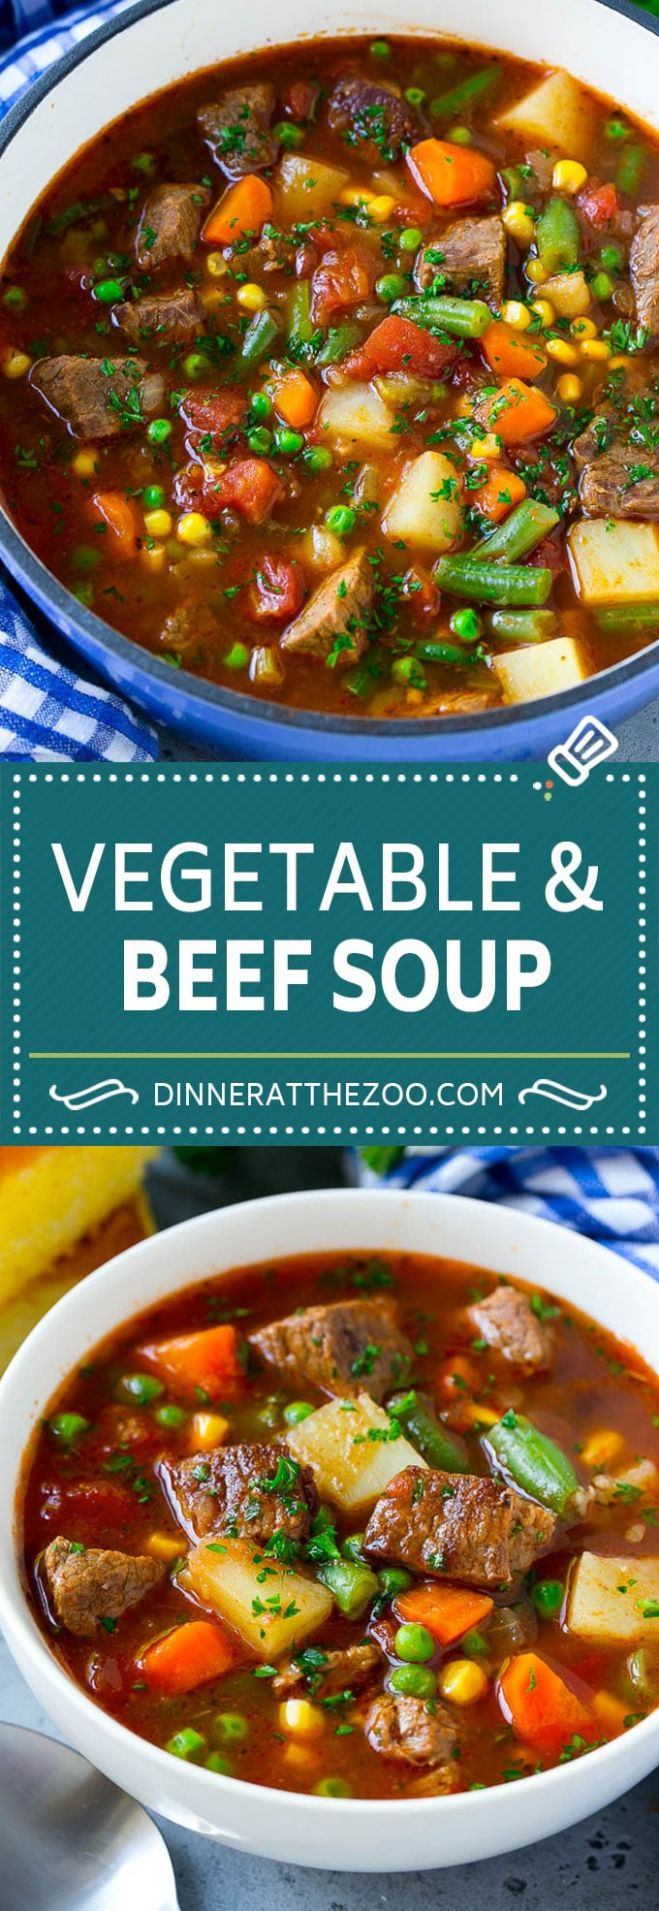 Vegetable Beef Soup - Dinner at the Zoo - Recipes Veg Beef Stew